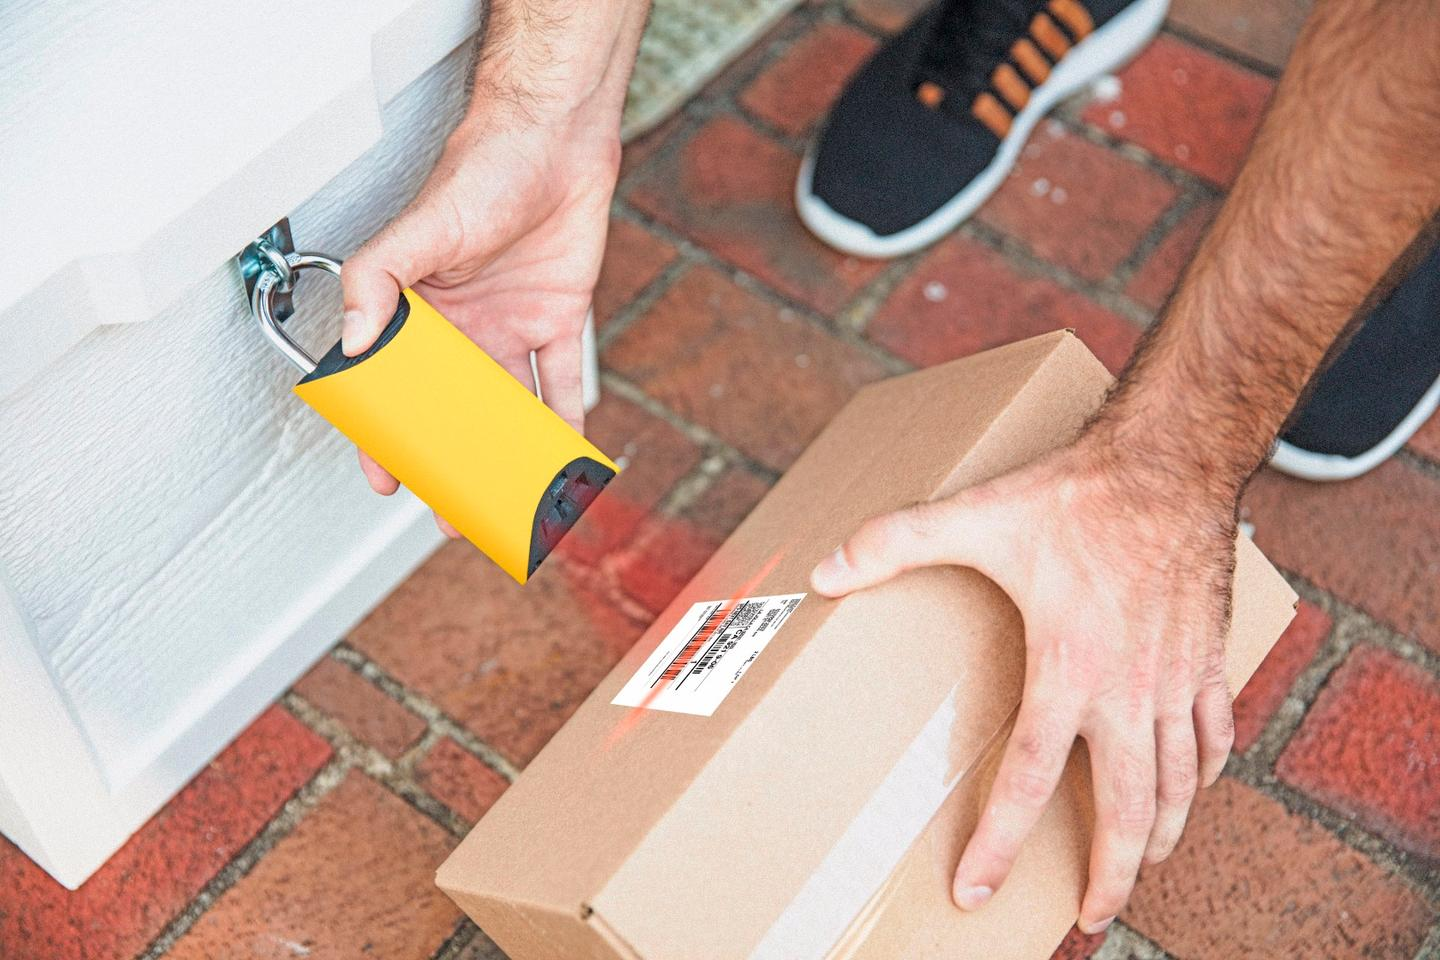 BoxLock Home has a built-in barcode scanner